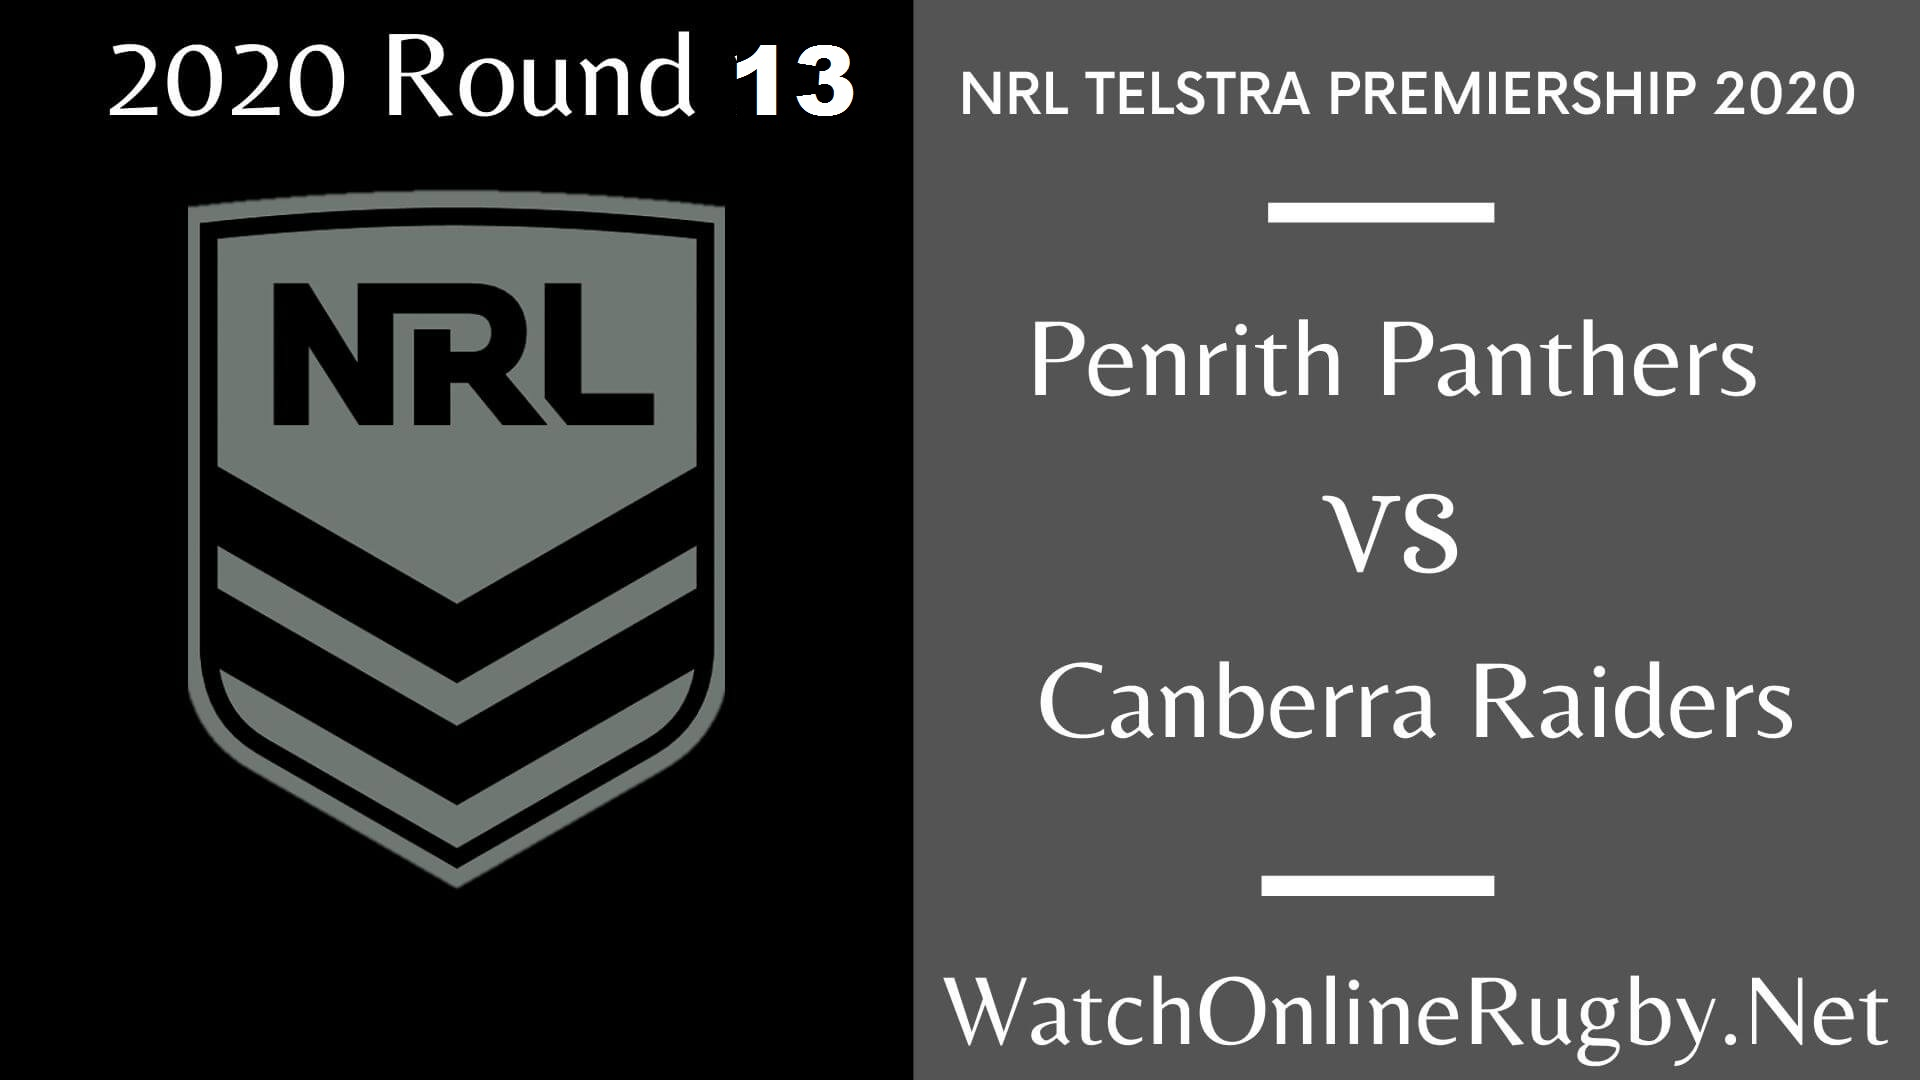 Penrith Panthers Vs Canberra Raiders Highlights 2020 Round 13 NRL Rugby